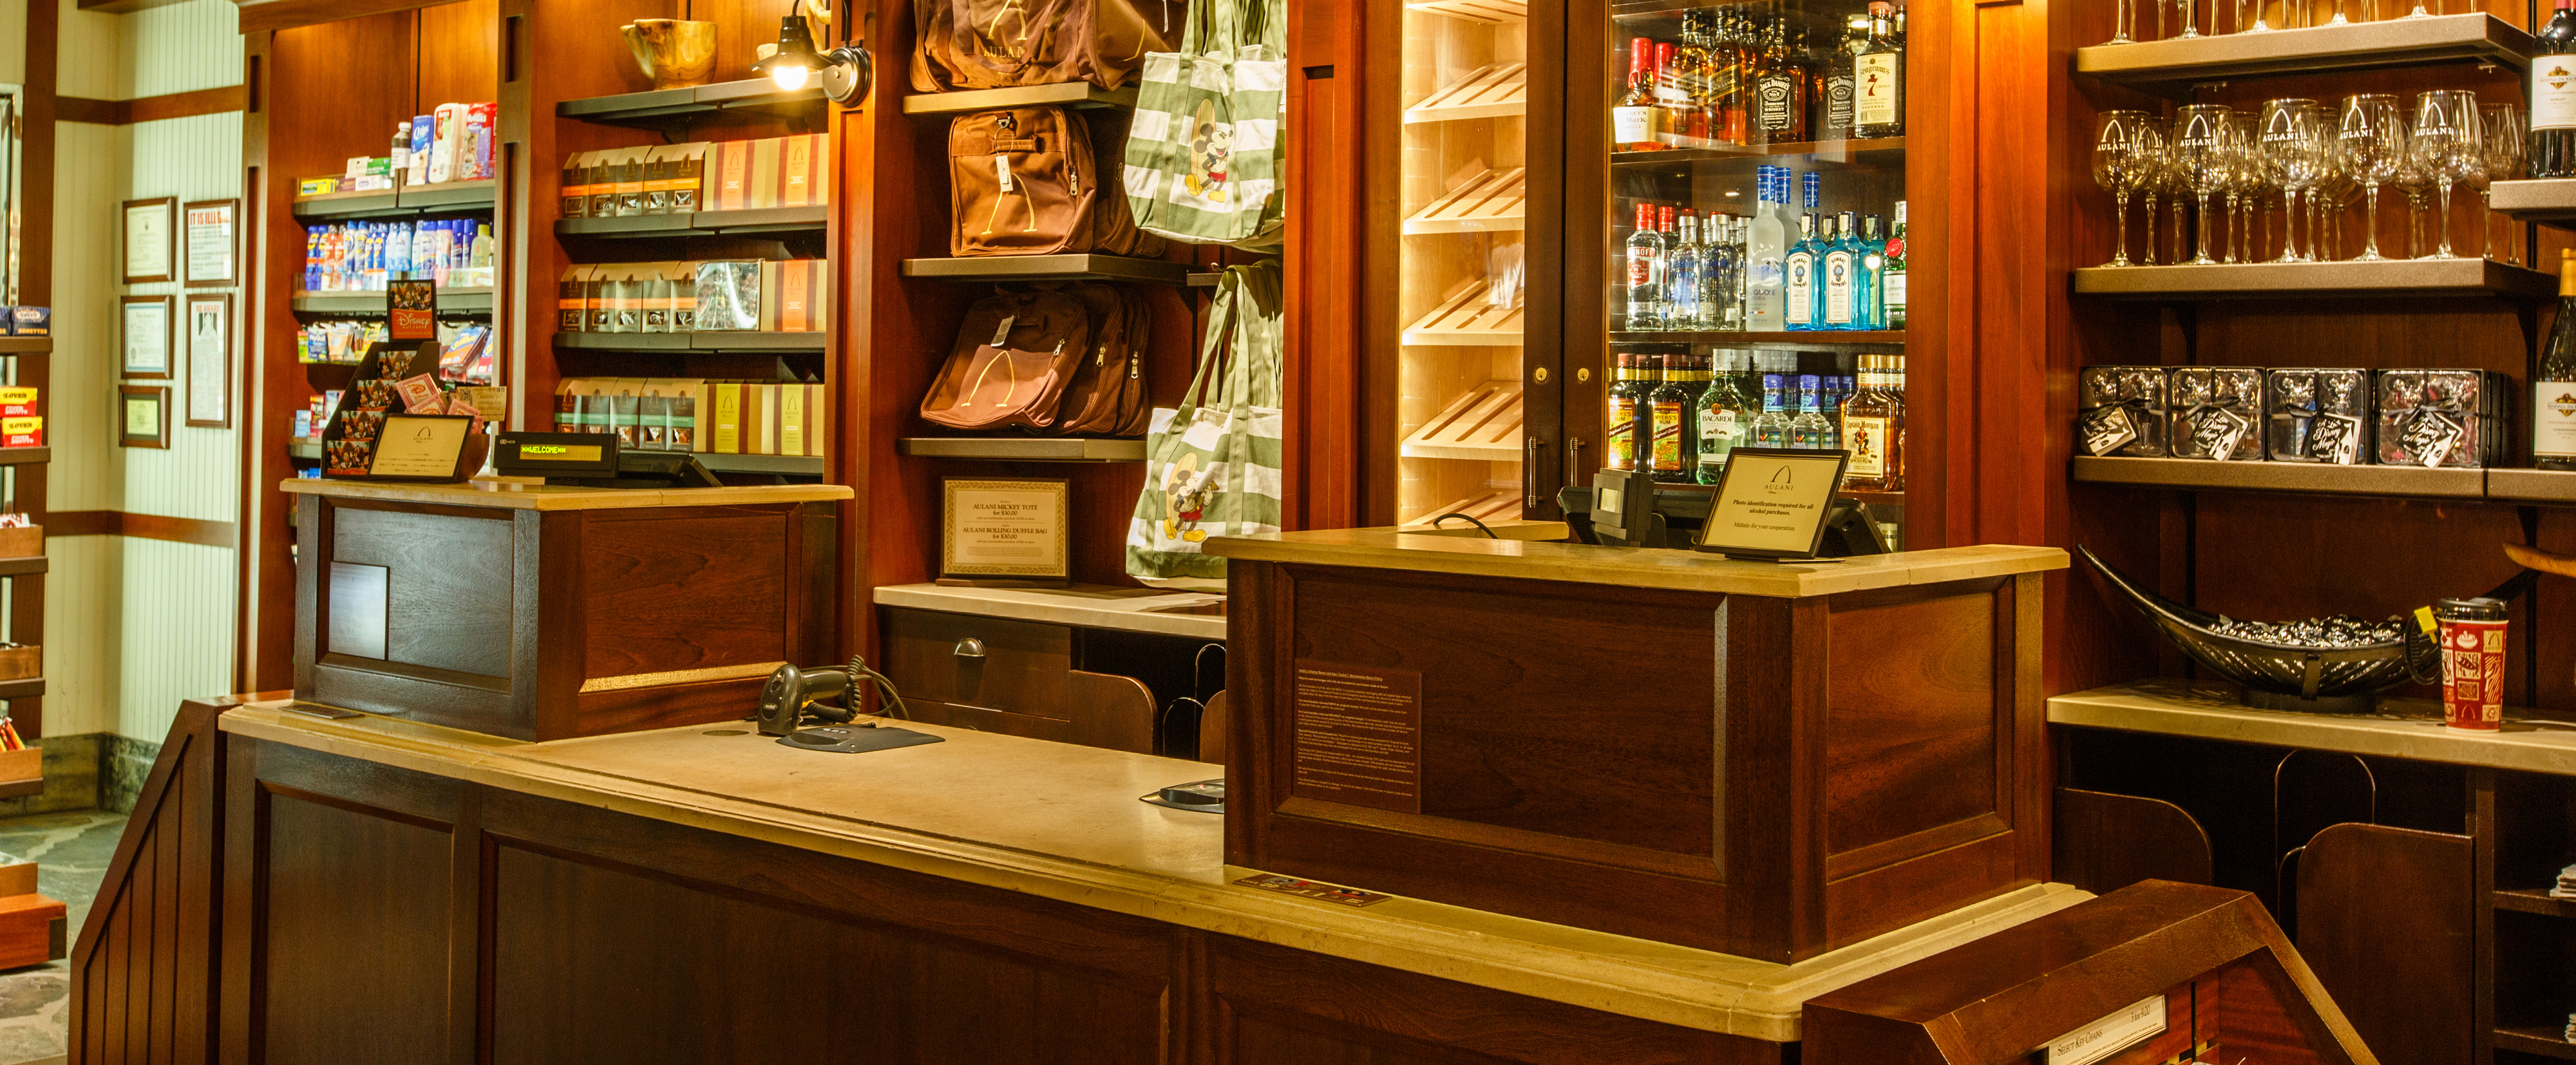 The Woodpaneled Cash Wrap Counter At Kalepa's Store, With Displays Of  Liquor,